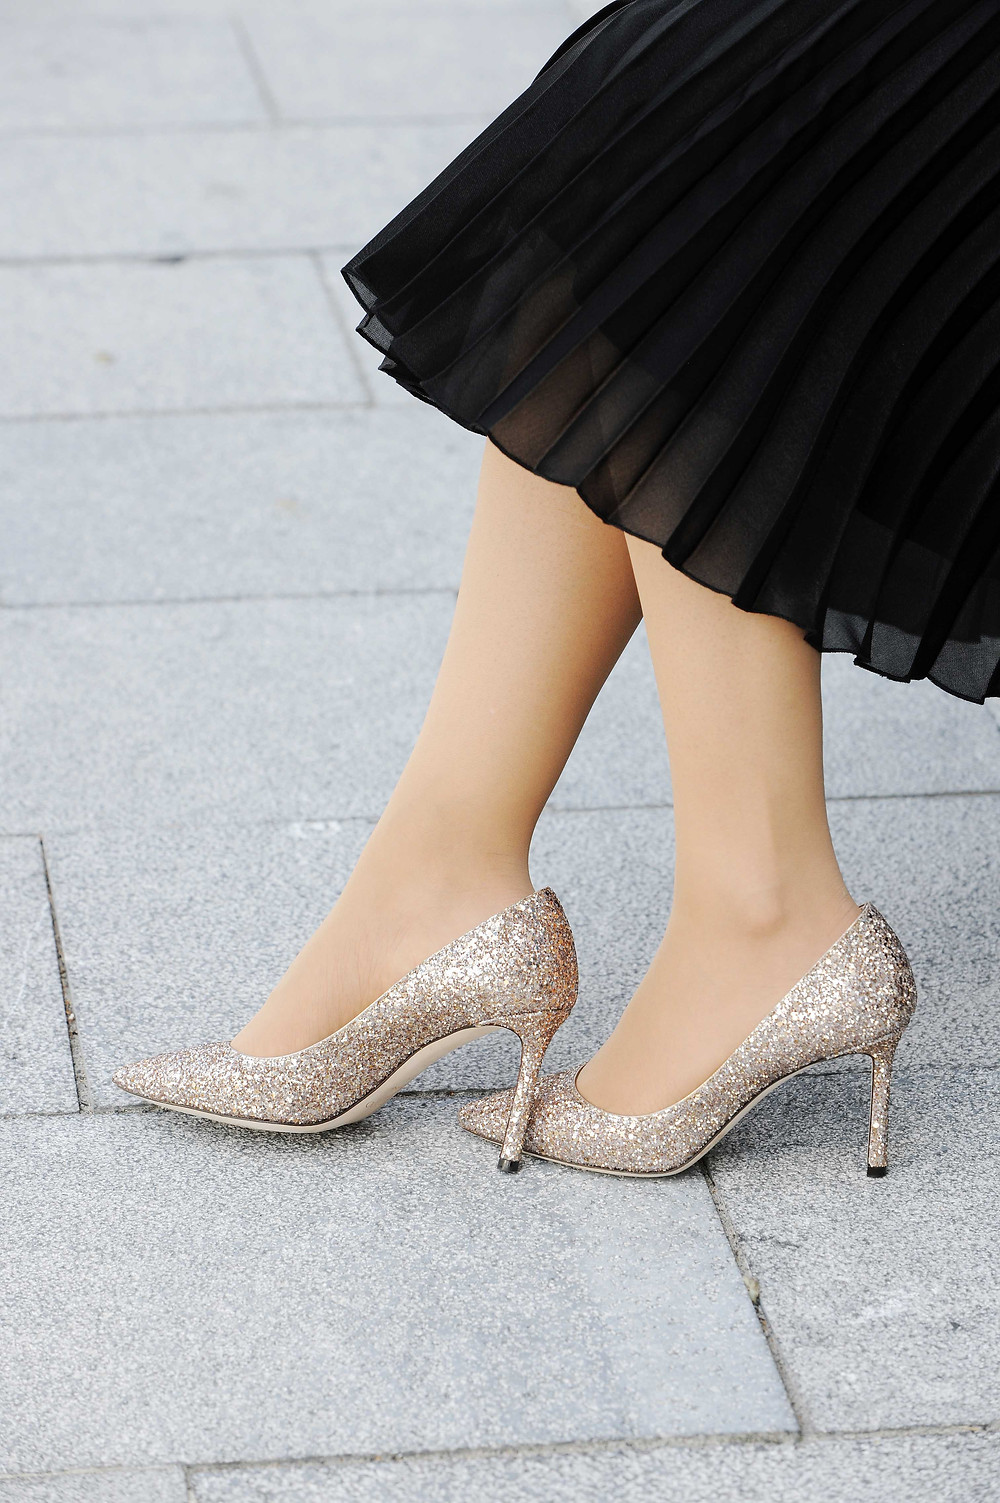 Business Casual woman outfit styled with Jimmy Choo Romy 85 glitter pumps in ballet pink